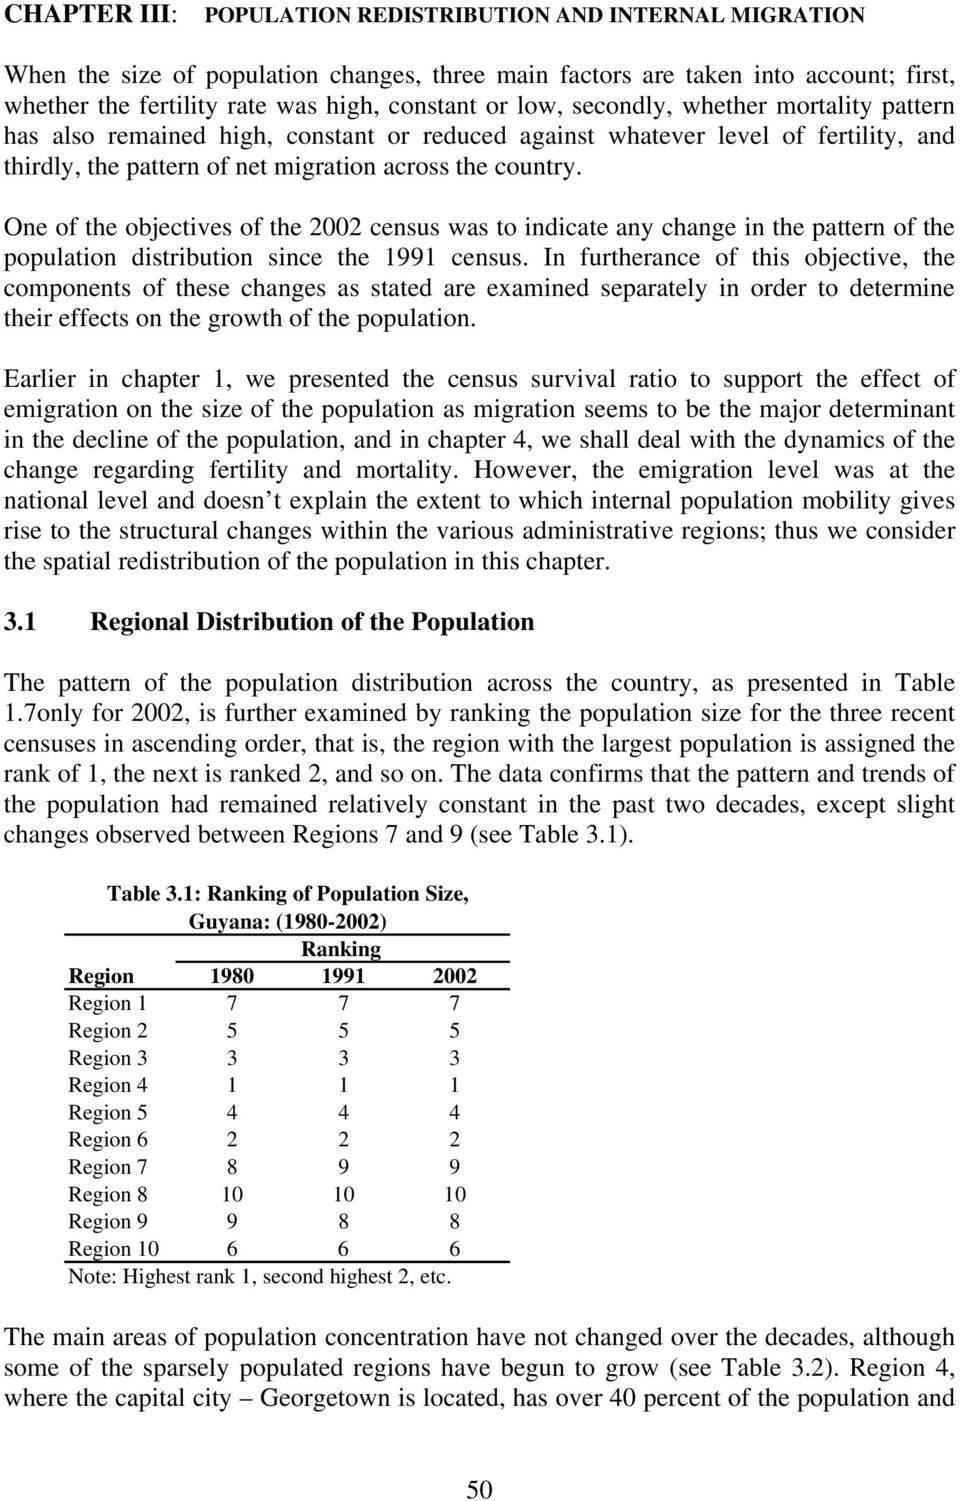 One of the objectives of the 2002 census was to indicate any change in the pattern of the population distribution since the 1991 census.